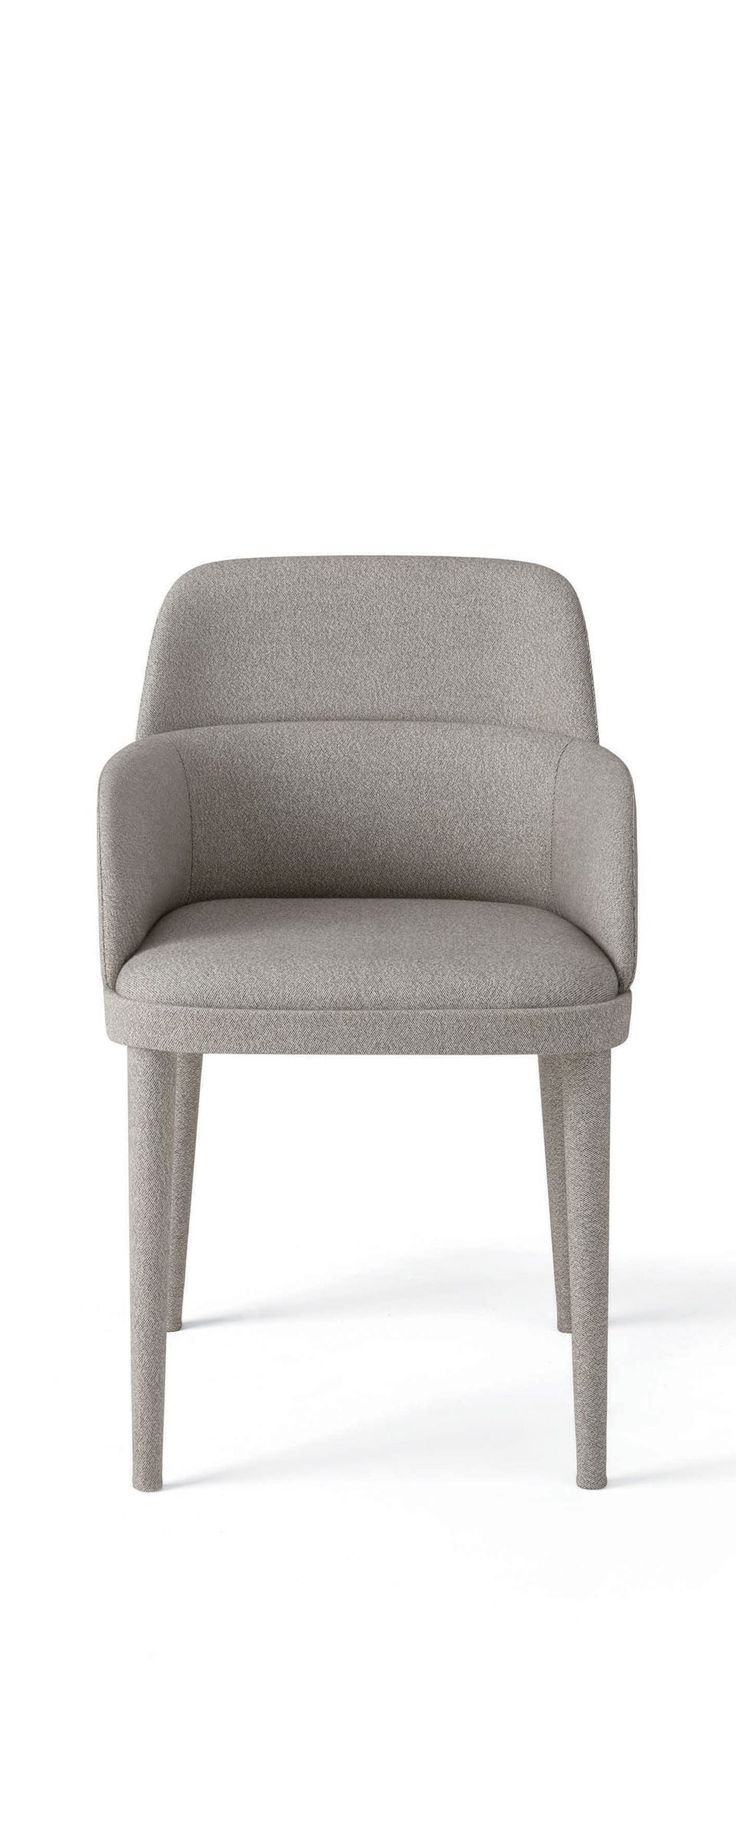 Jackie, upholstered armchair covered with fabric or suede. Designed by Stefano Bigi for Gallotti&Radice.